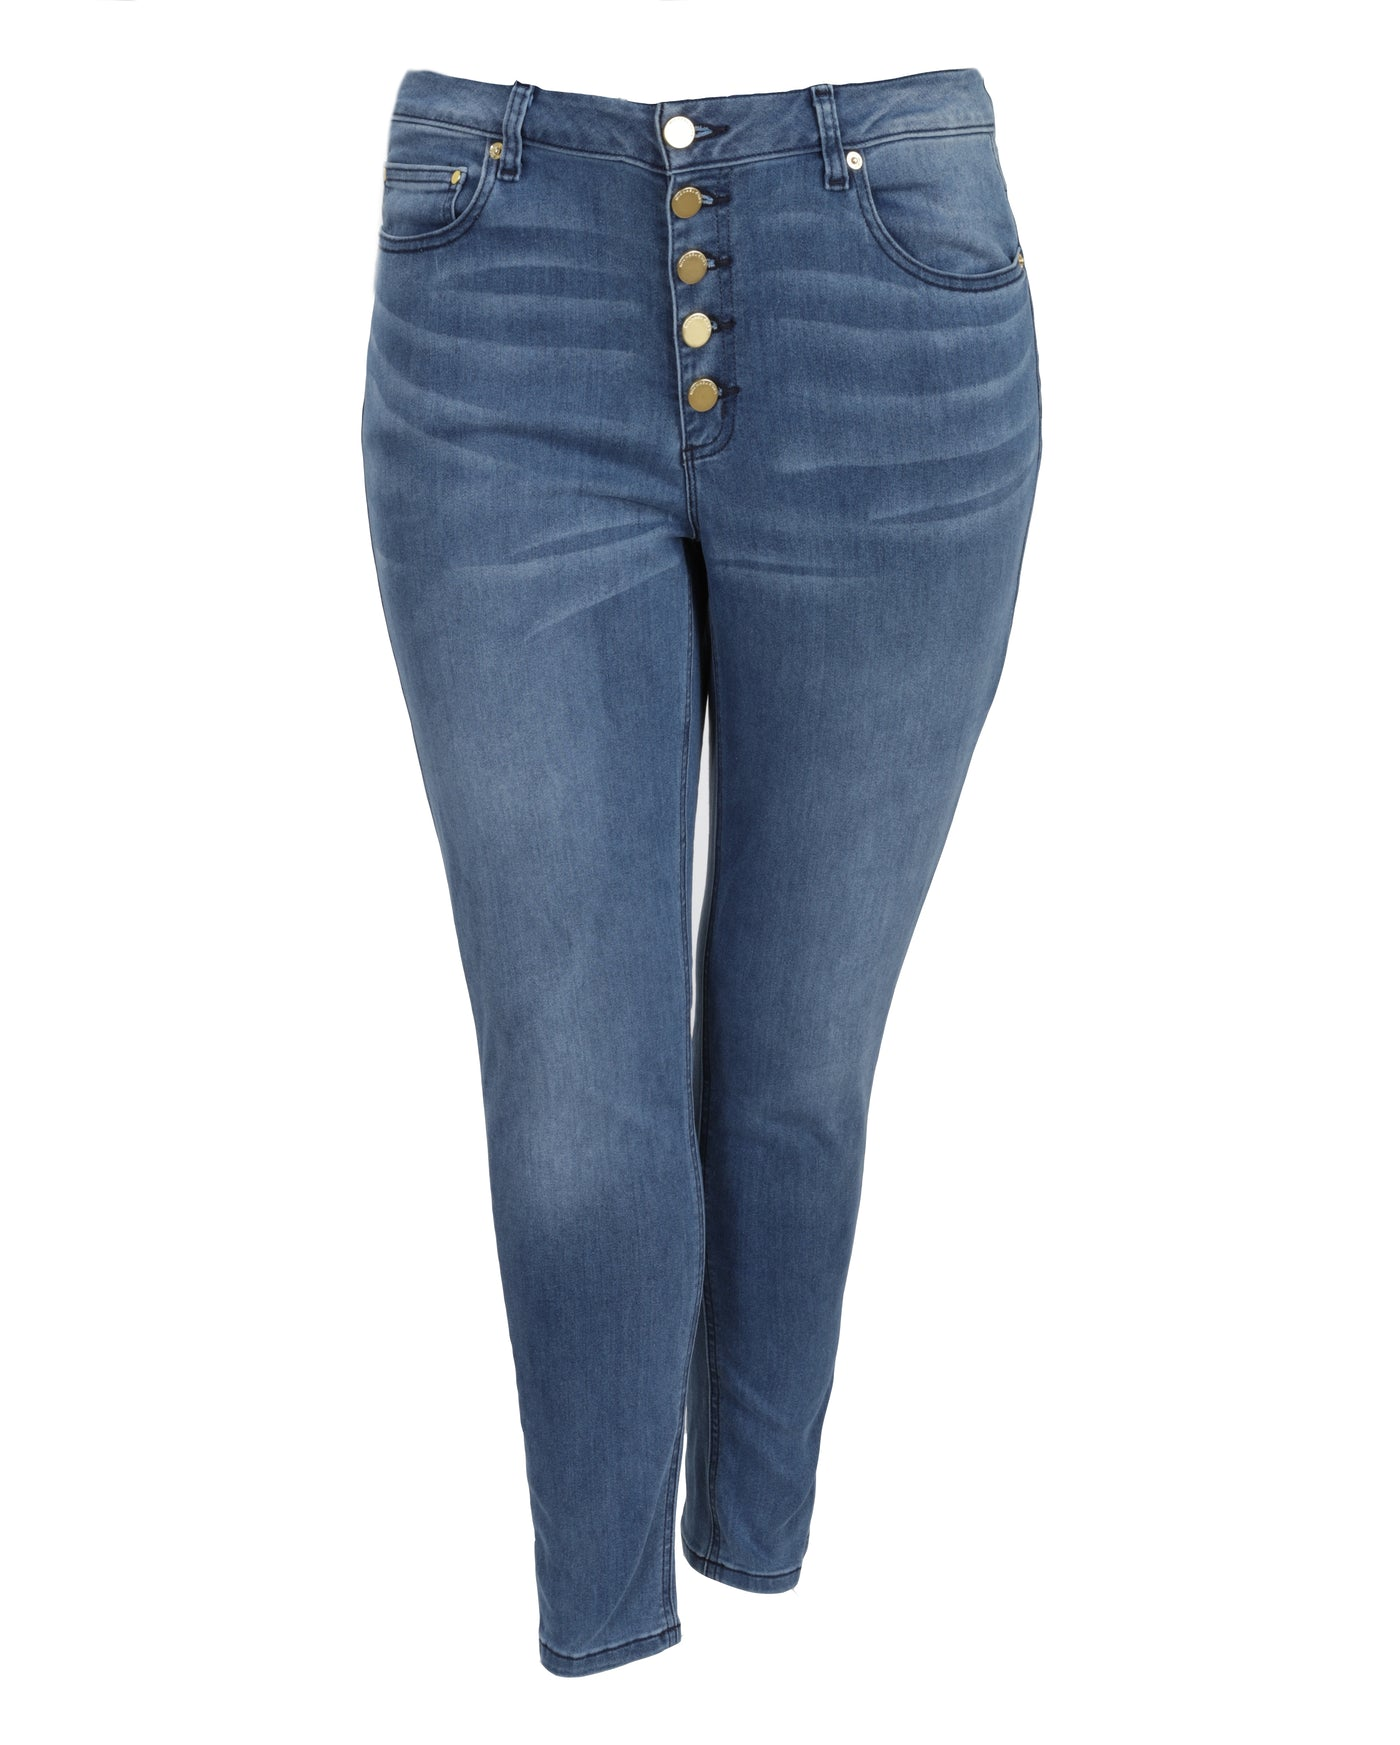 Michael Kors Button Front Denim Pant